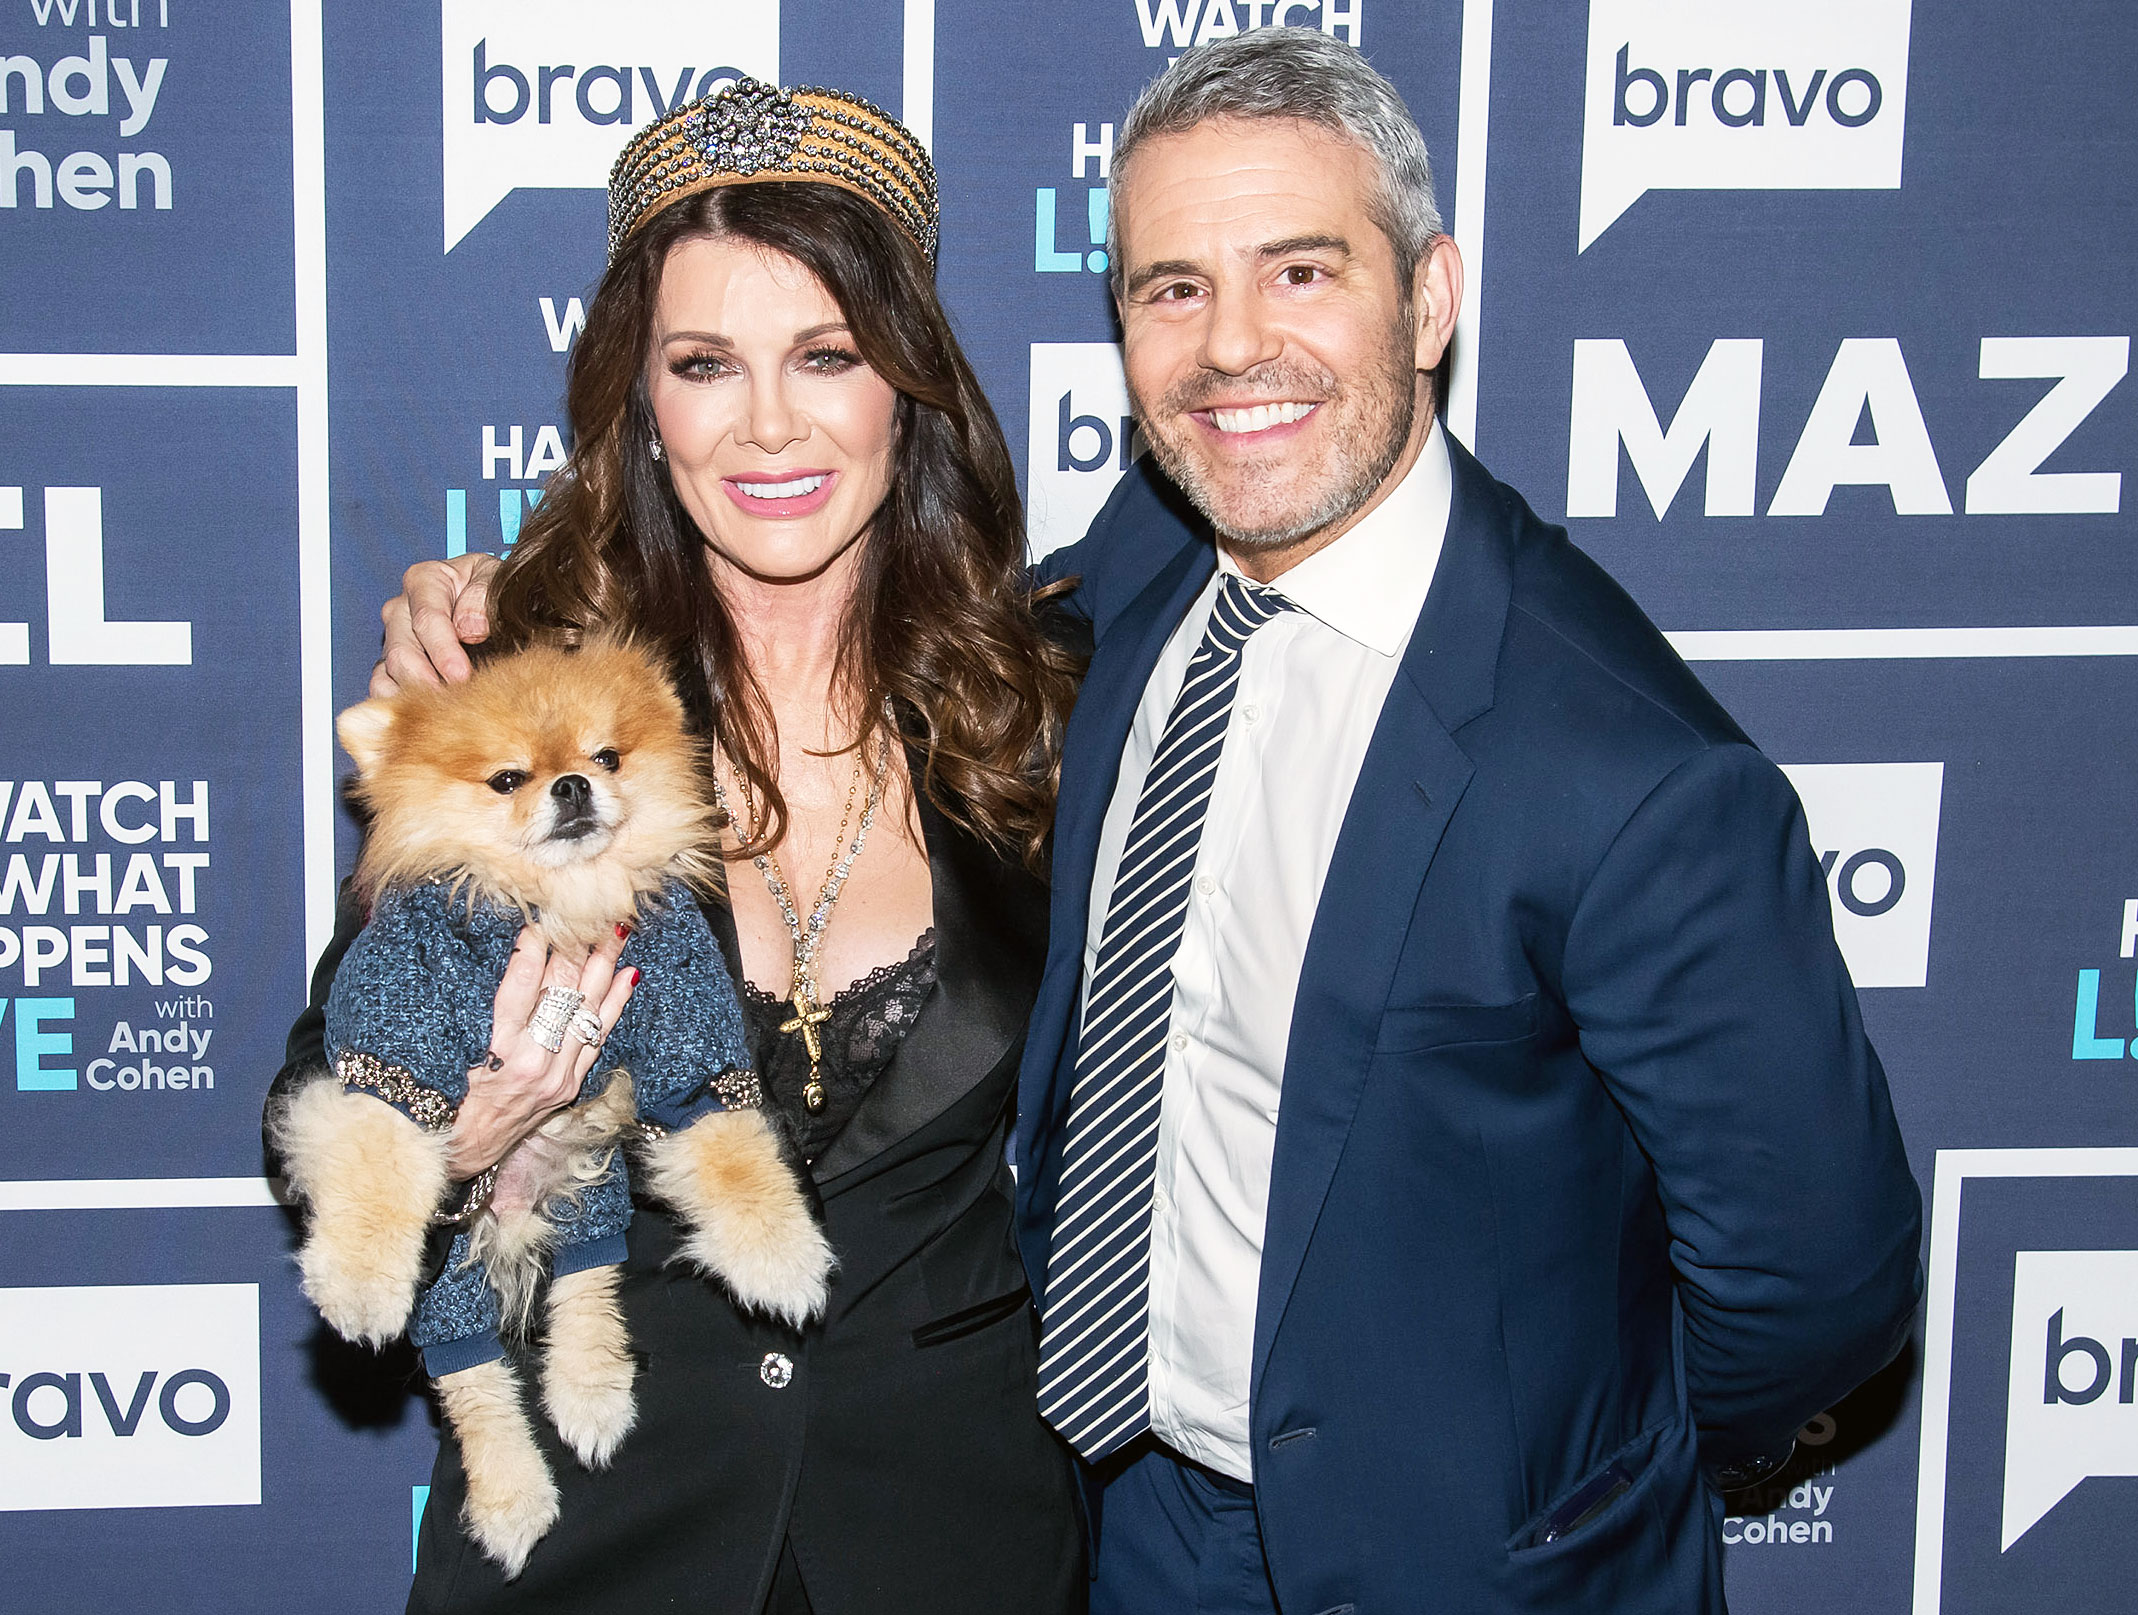 Andy Cohen Lisa Vanderpump on WWHL in Hopes She Will Return to RHOBH